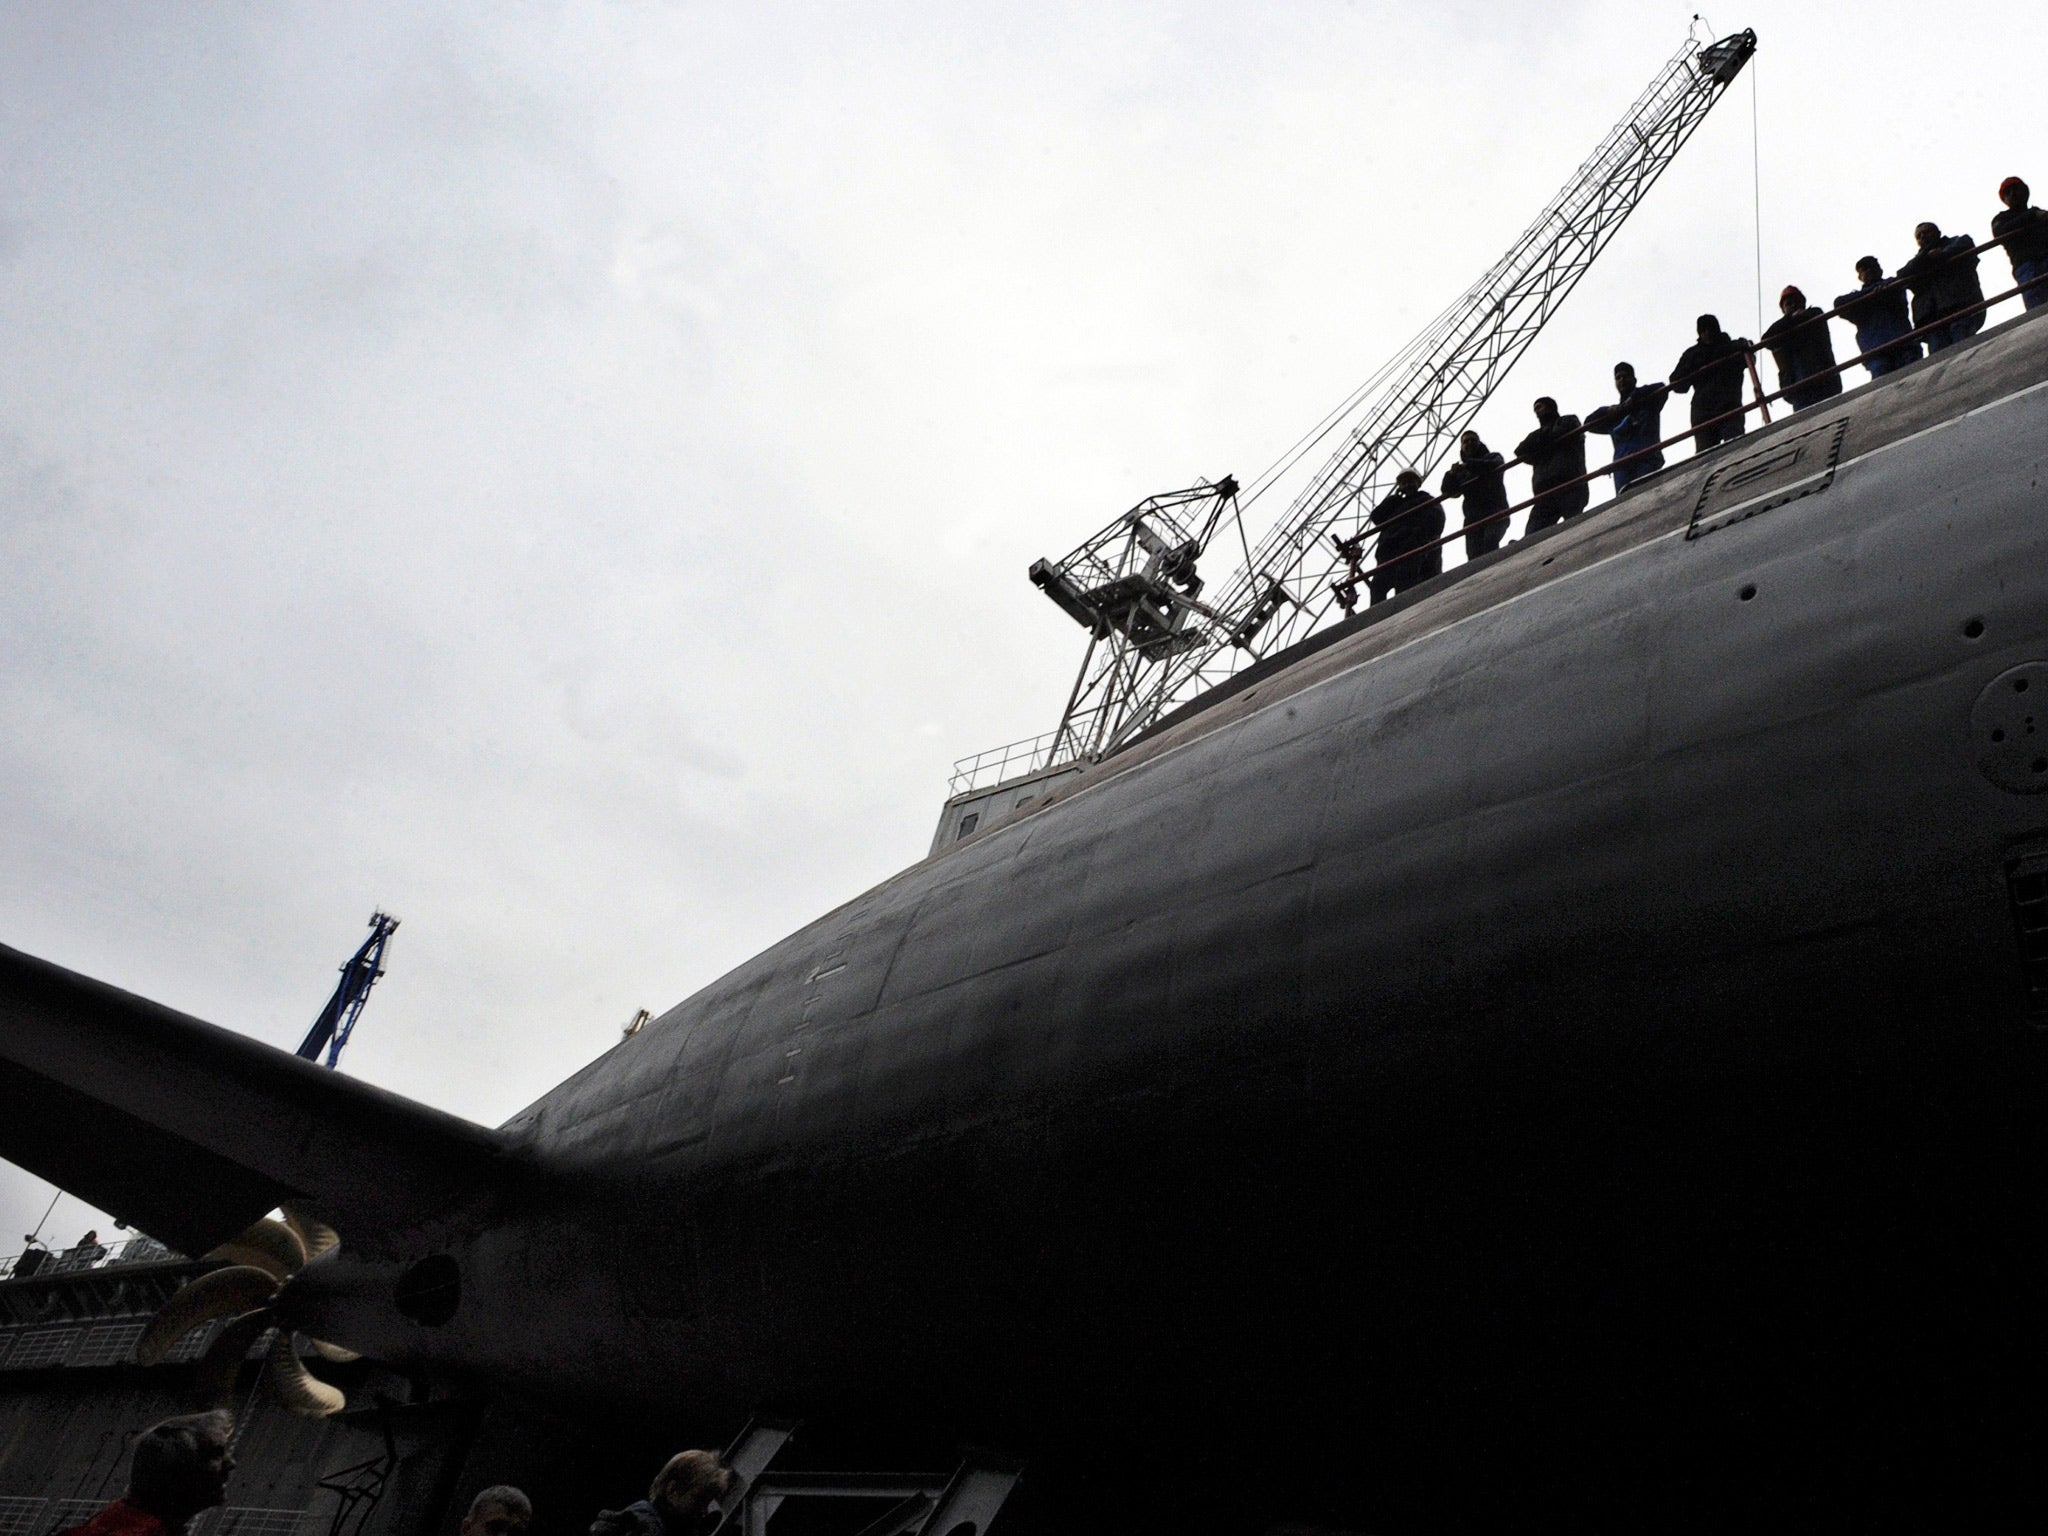 As Russia unveils nuclear subs with underwater drones and robots, the stealth race heats up: governments pour cash into secret armies